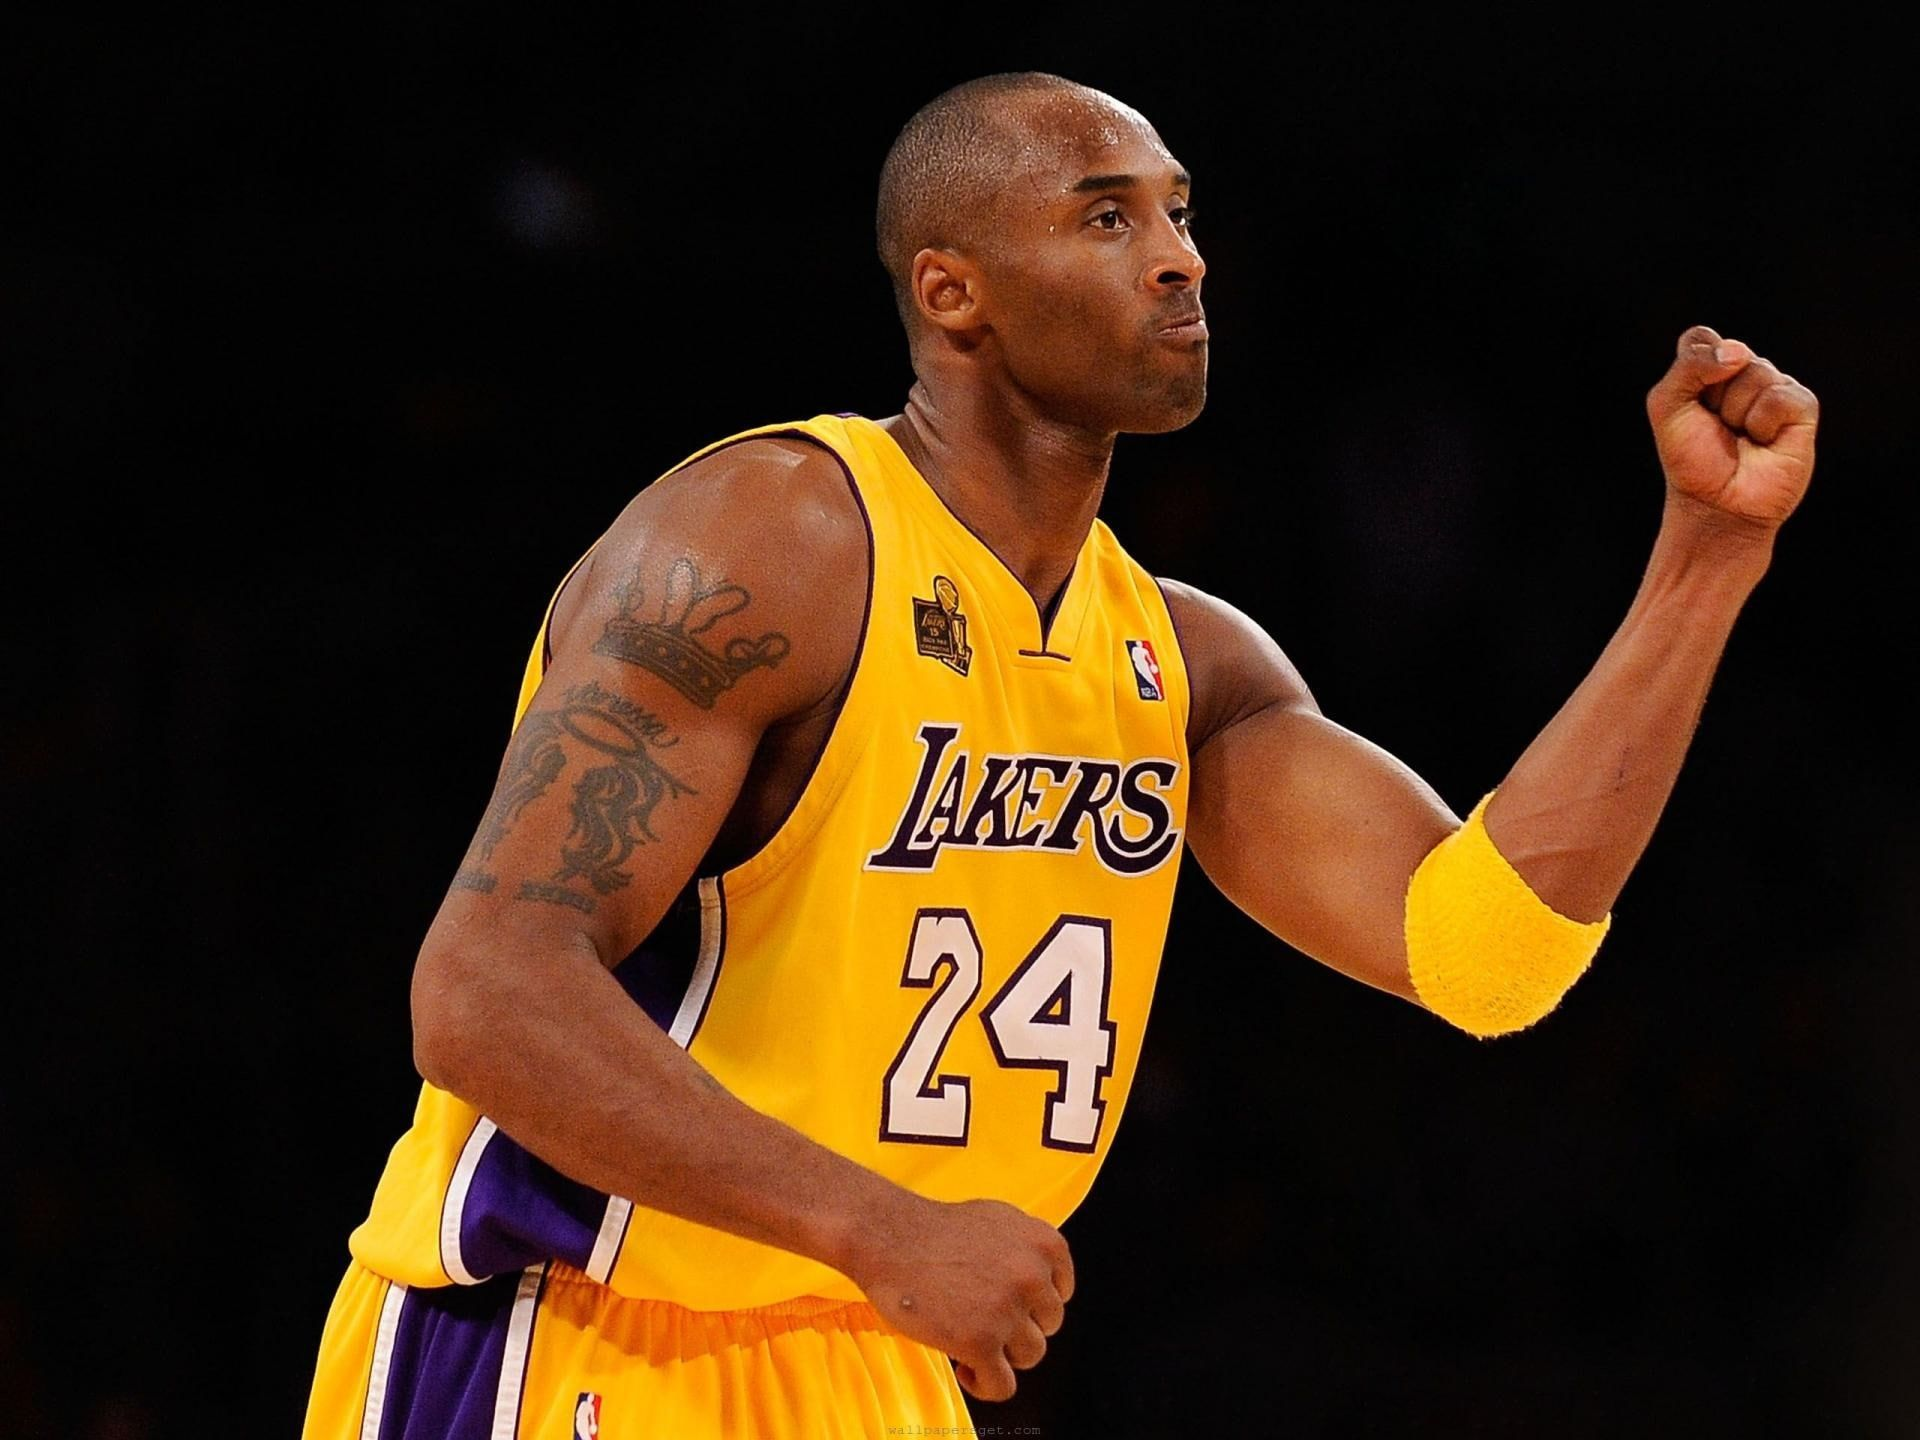 Pin on Kobe bryant pictures